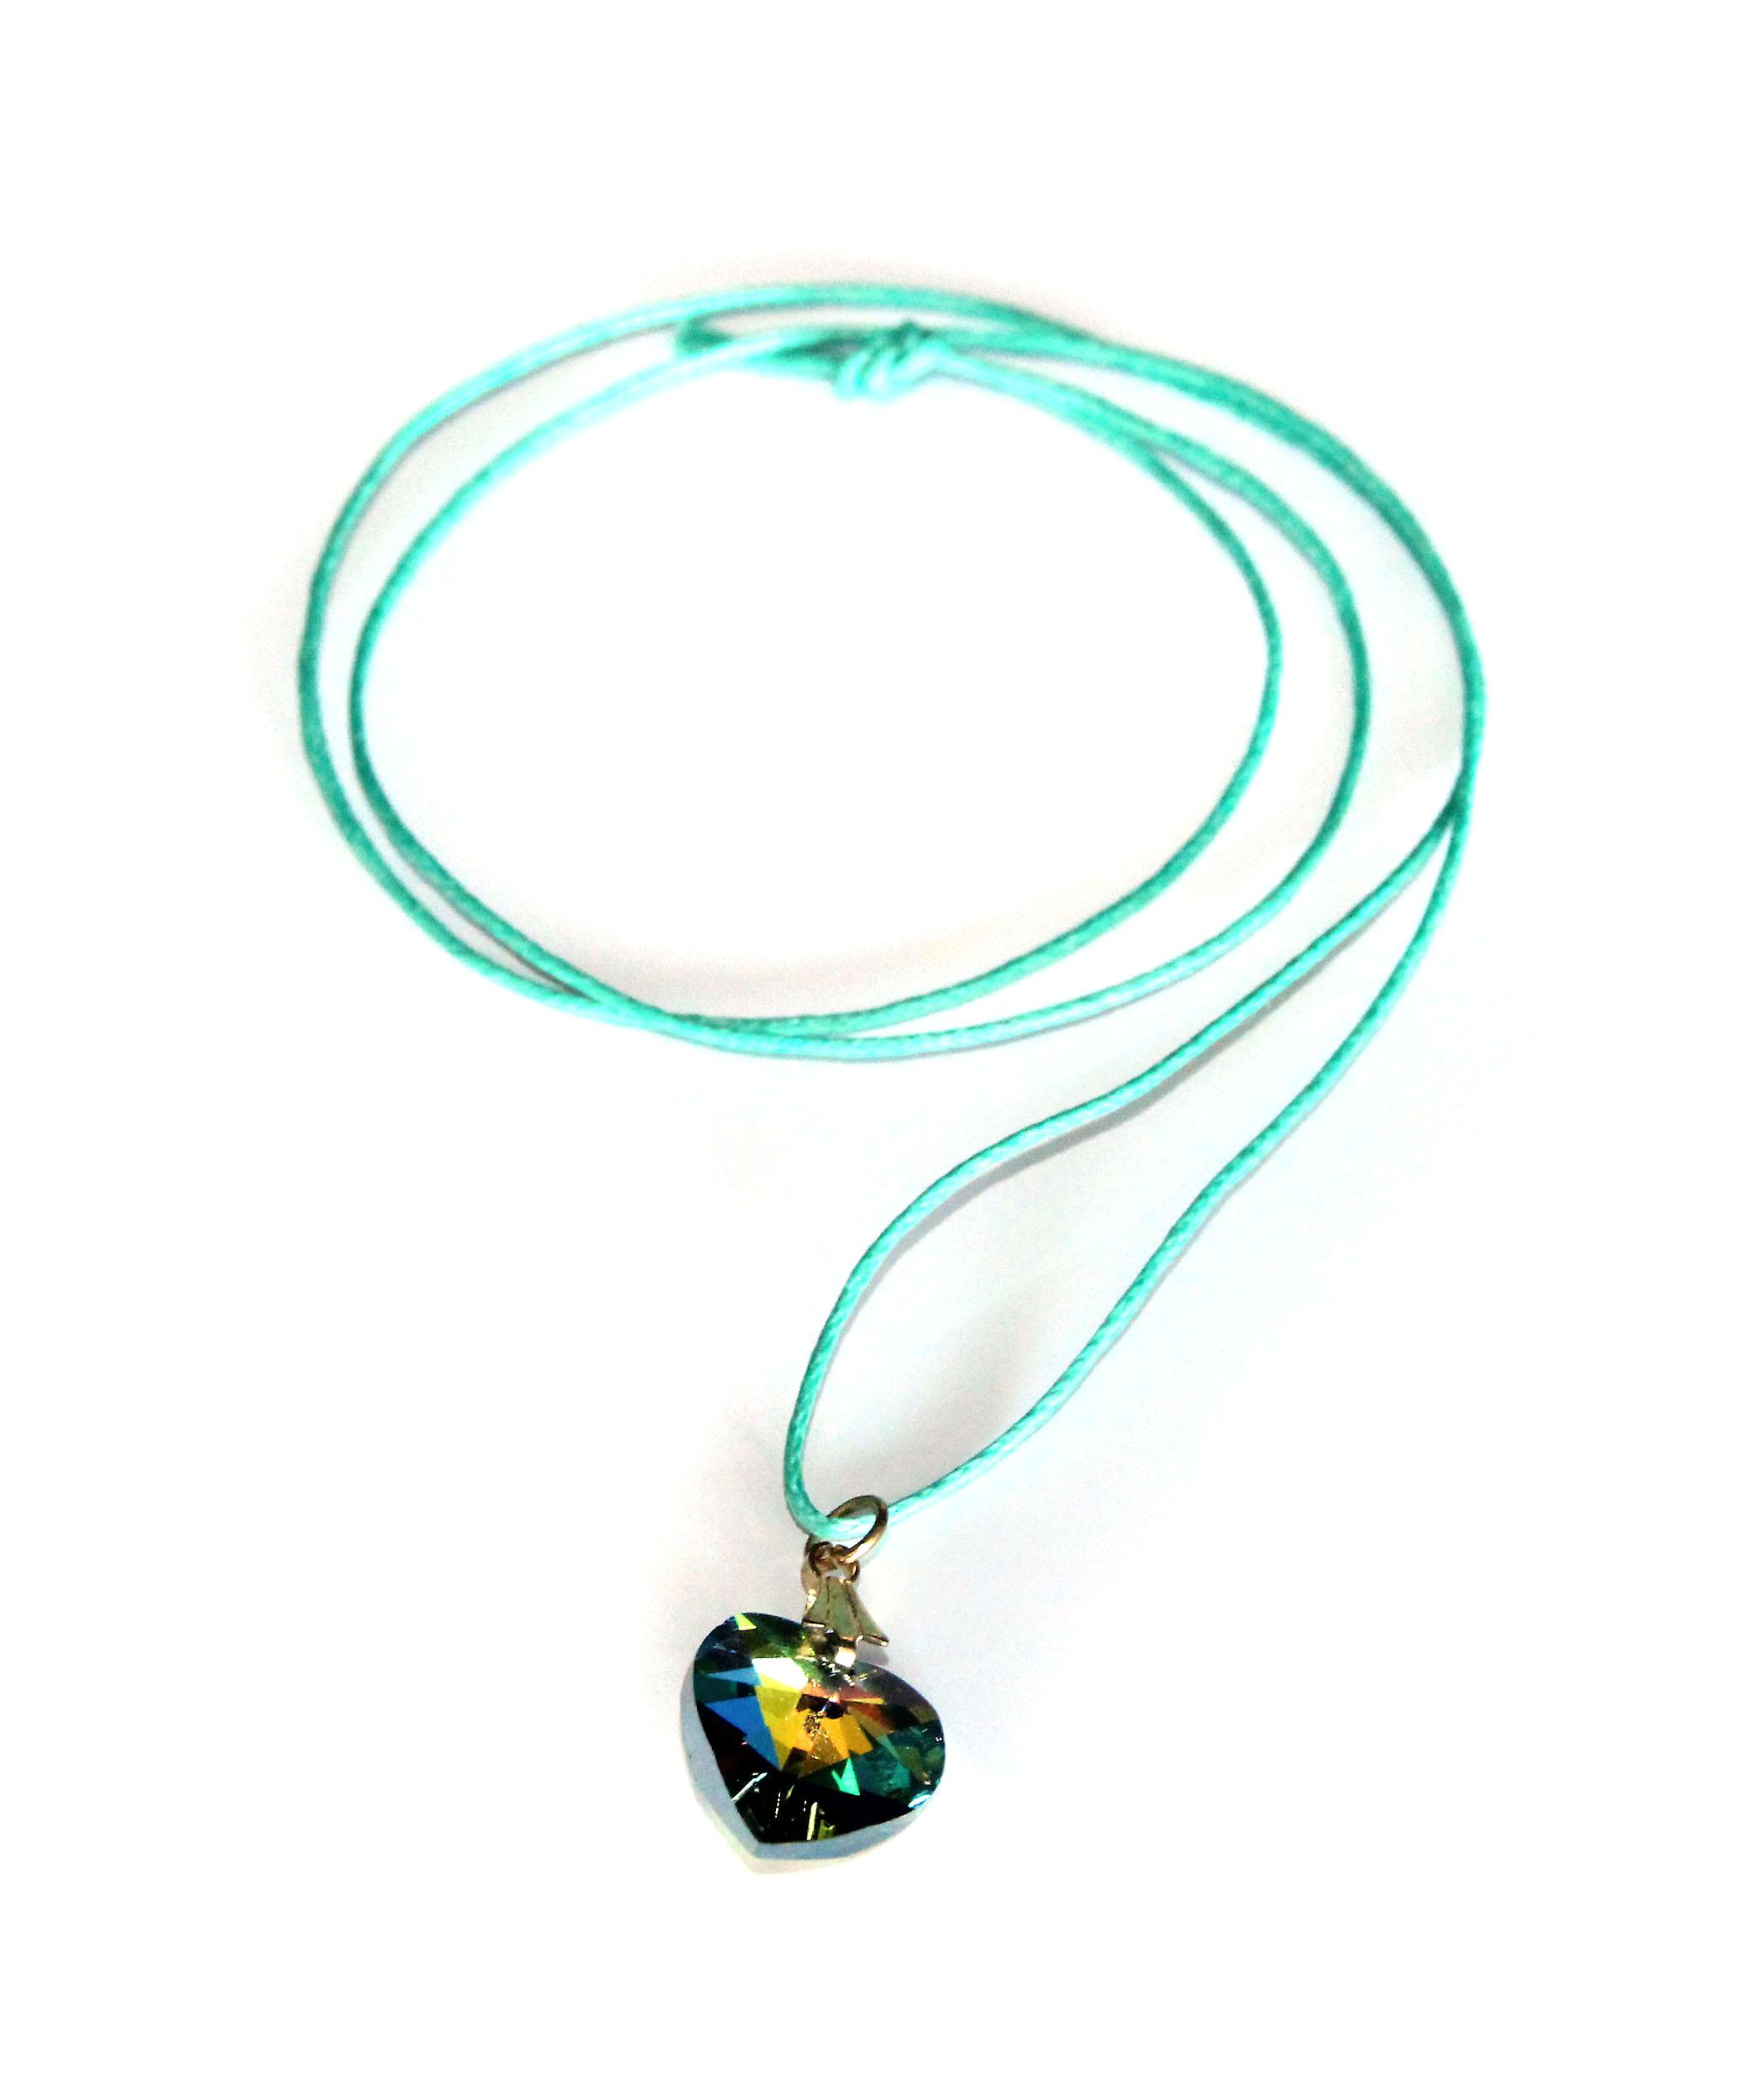 Waooh - Jewelry - Swarovski / Green Heart Pendant with waxed cord